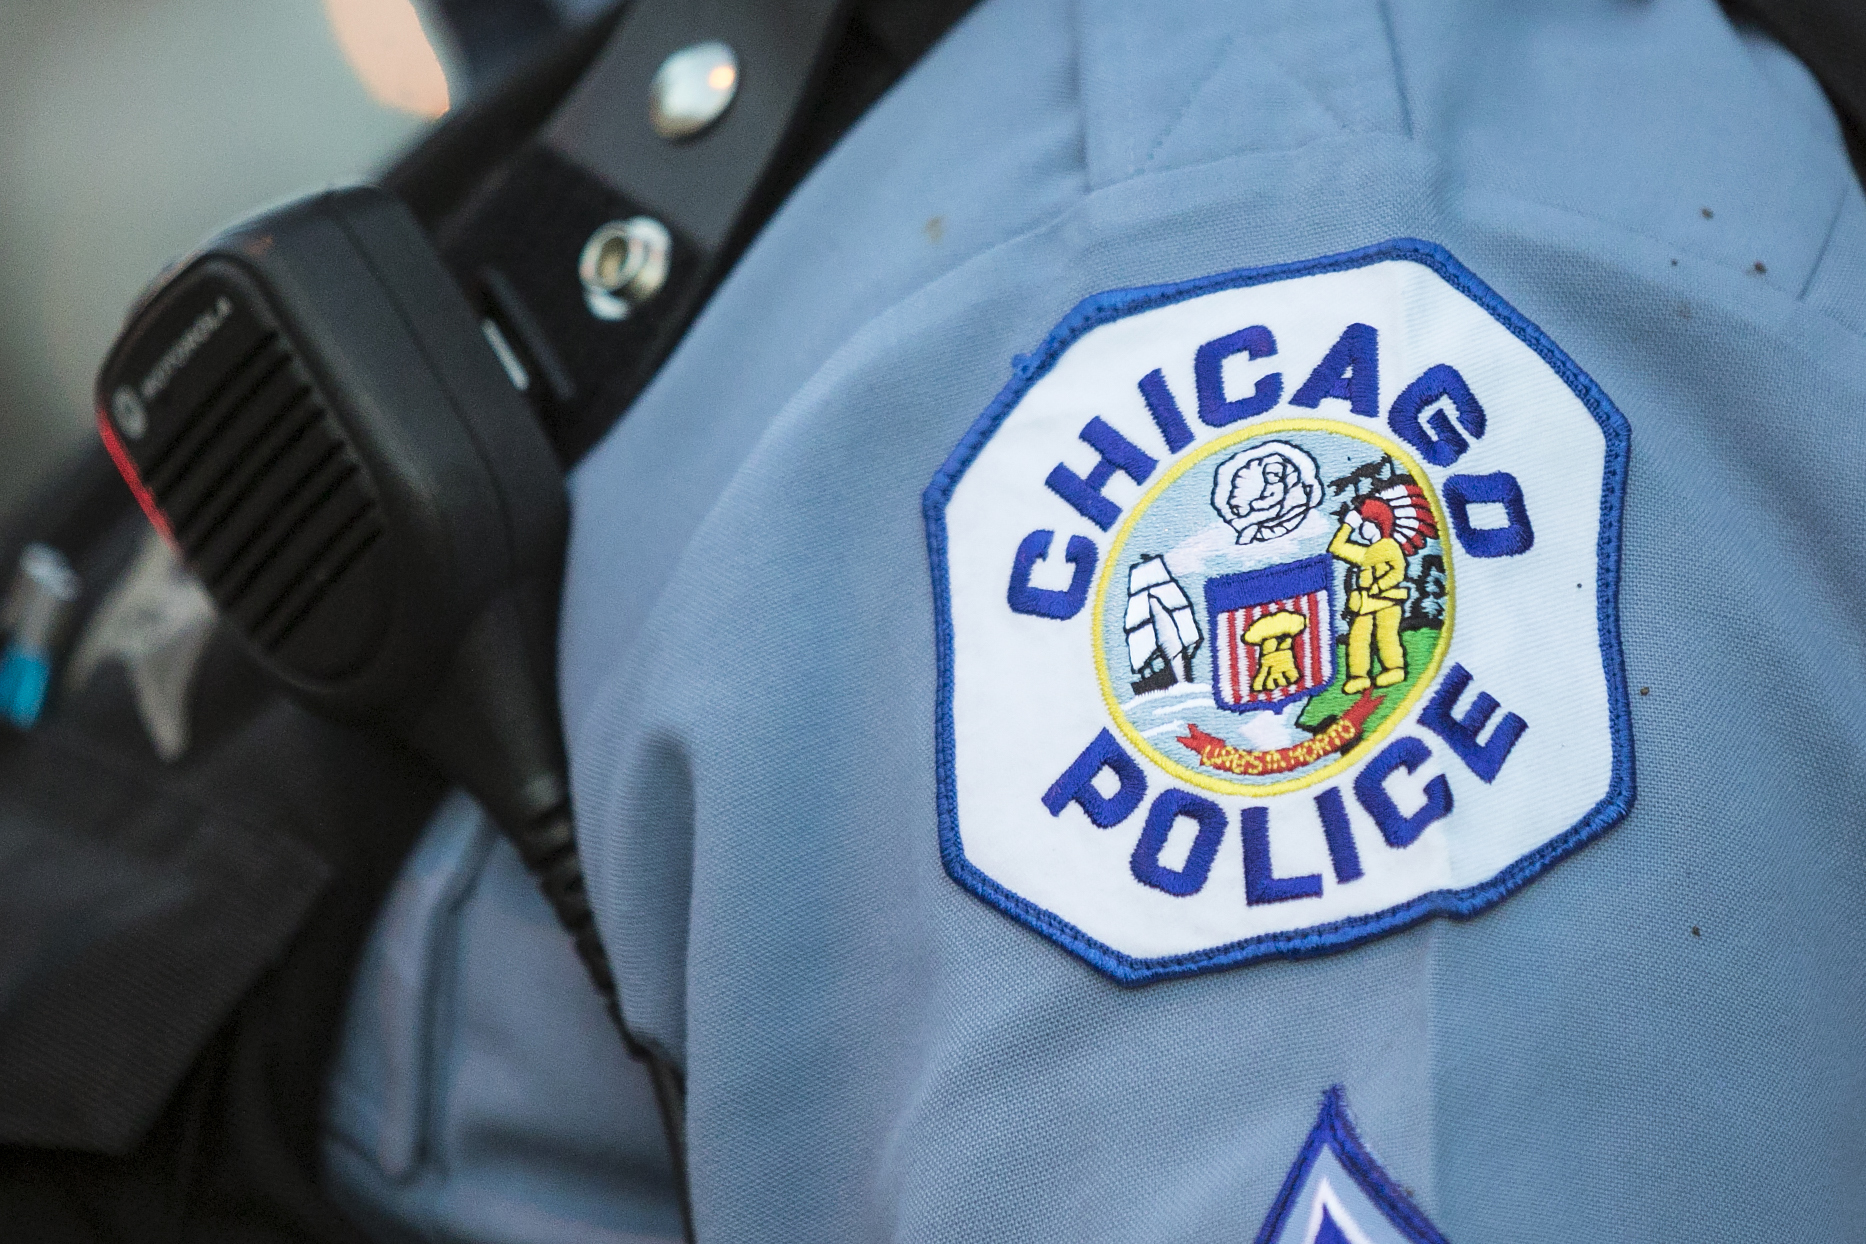 Three strong-arm robberies were reported in August, 2019 in River North and the Gold Coast.